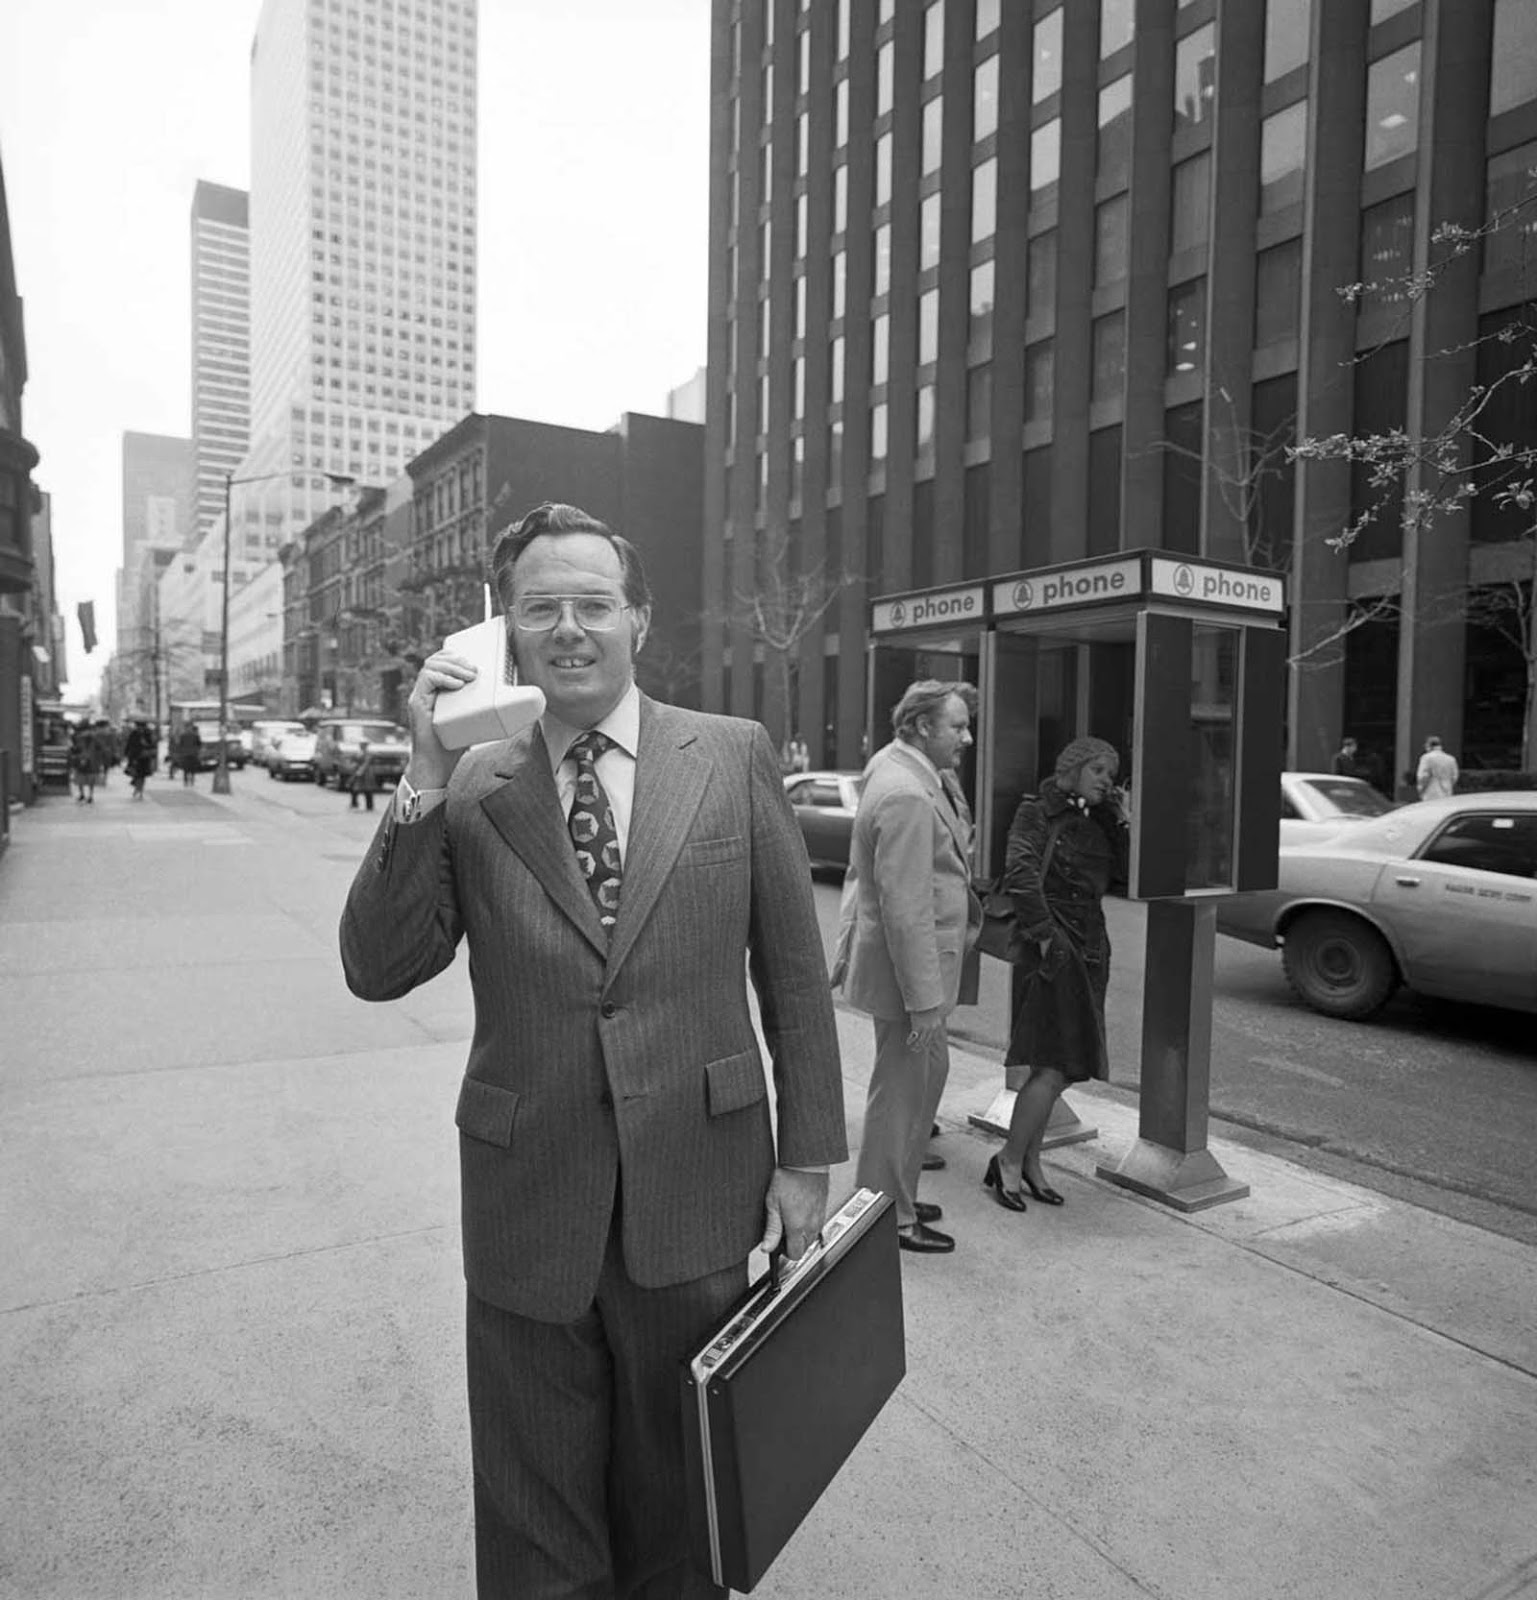 John Mitchell with his phone on the streets of New York. He helped develop the design for the first mobile phone. 1973.